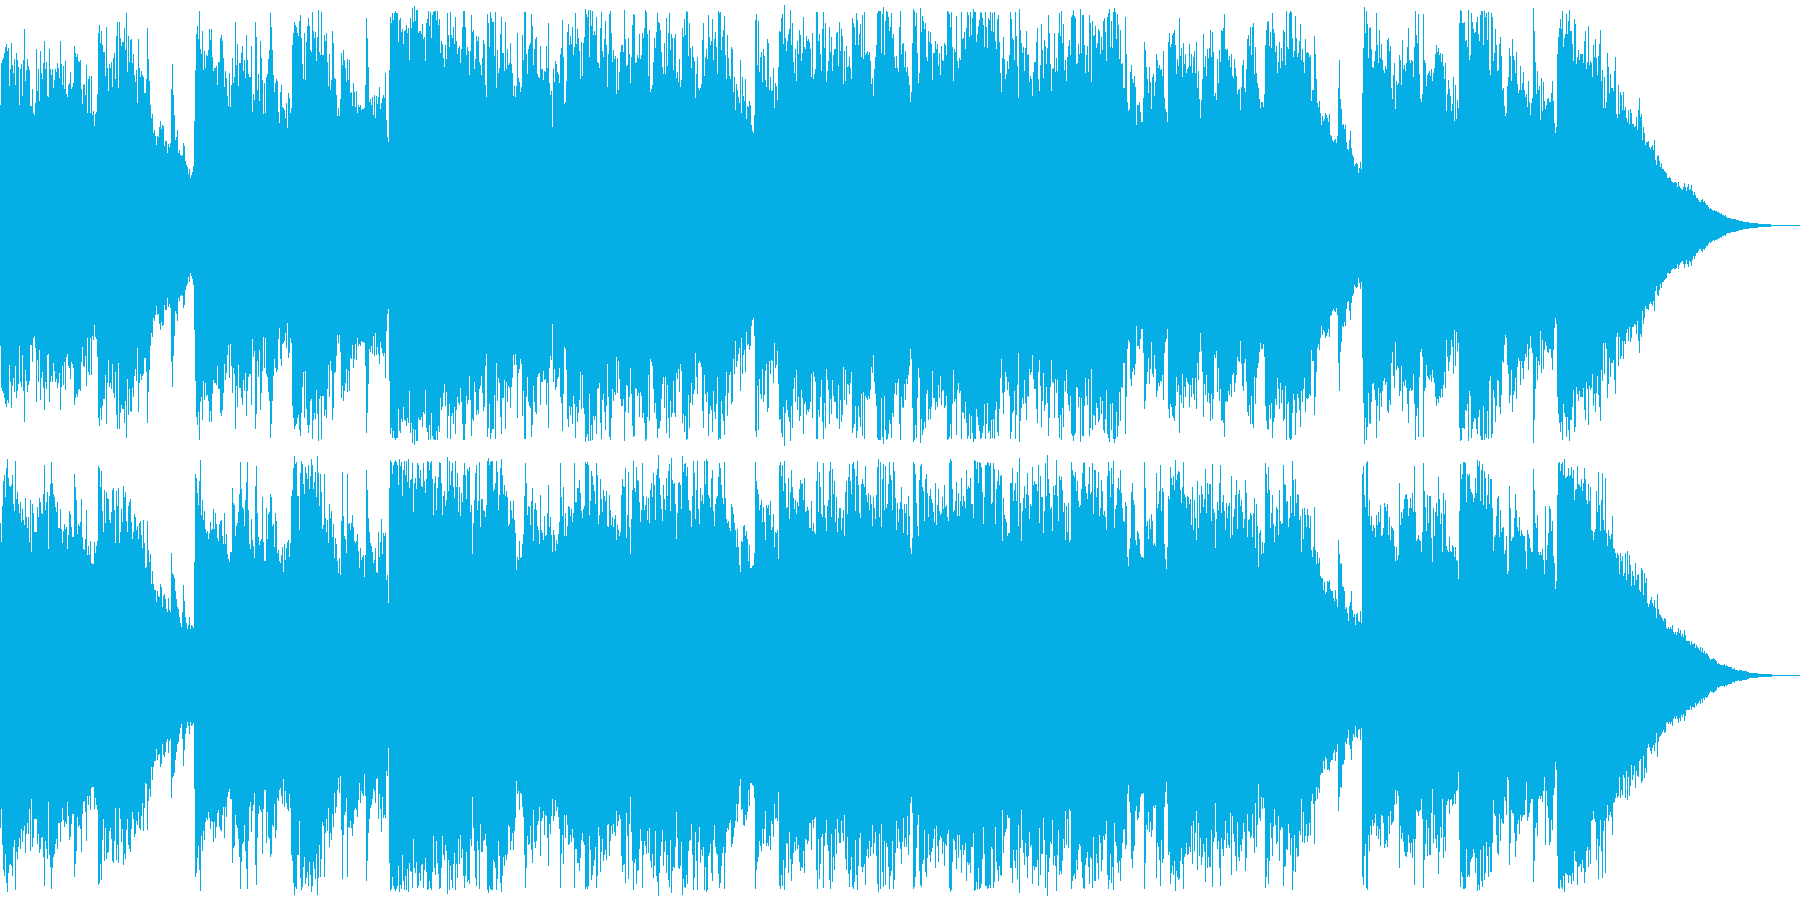 Refreshing commercials, Western music, female vocal pops's reproduced waveform